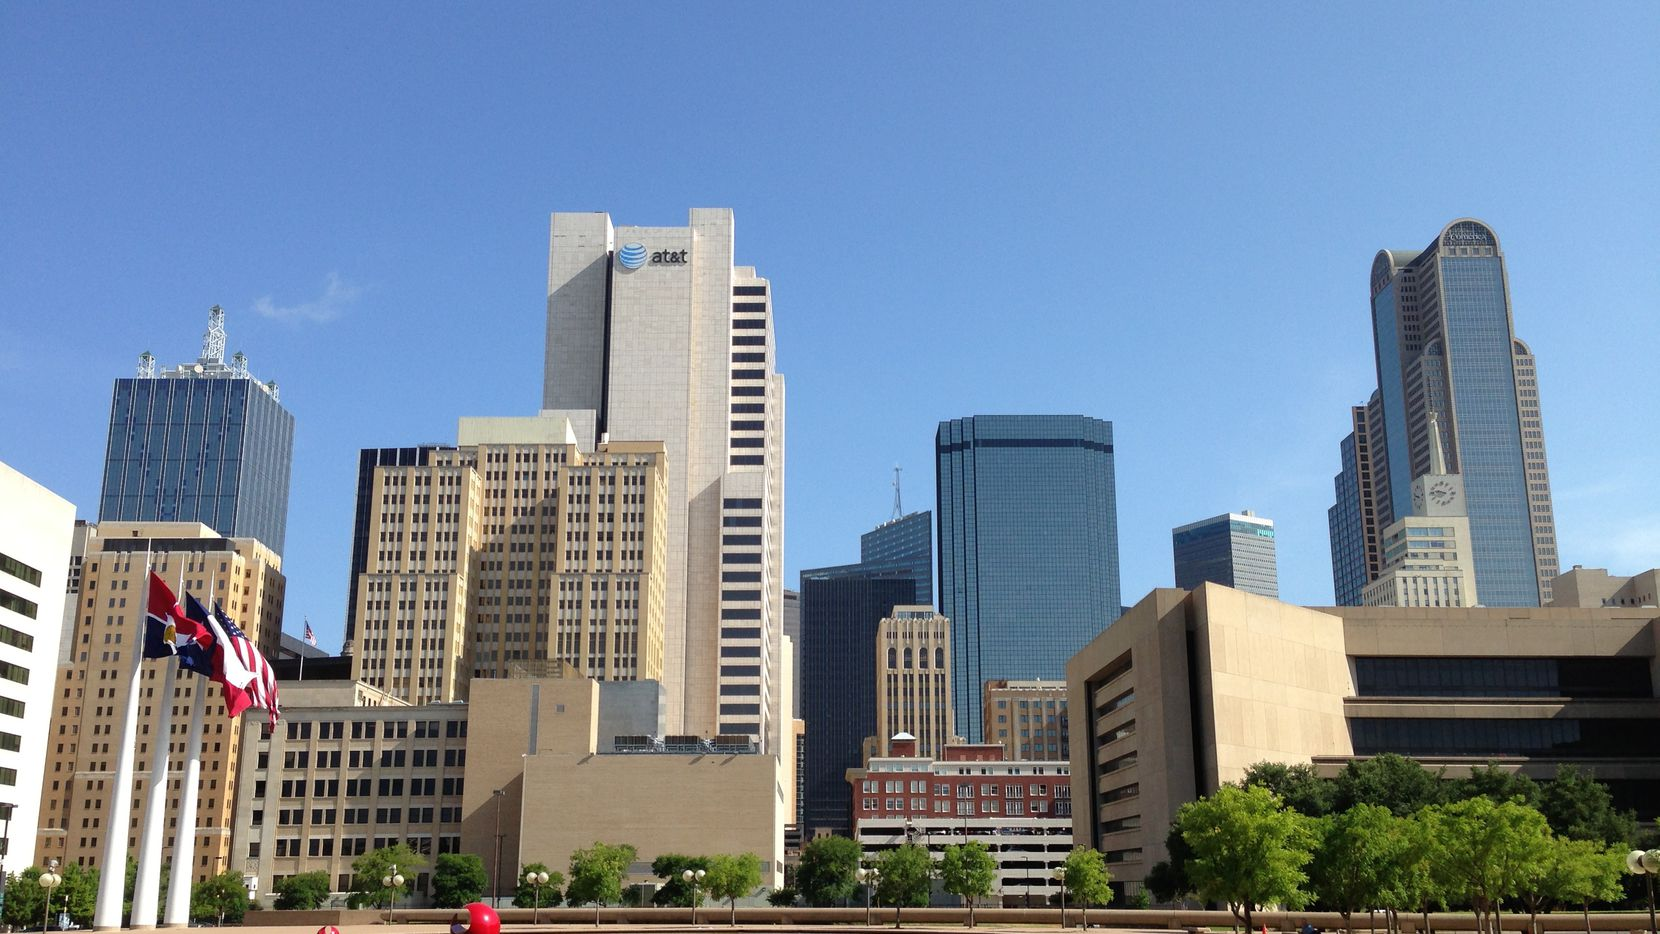 Net office leasing has totaled almost 700,000 square feet in downtown Dallas so far in 2018.